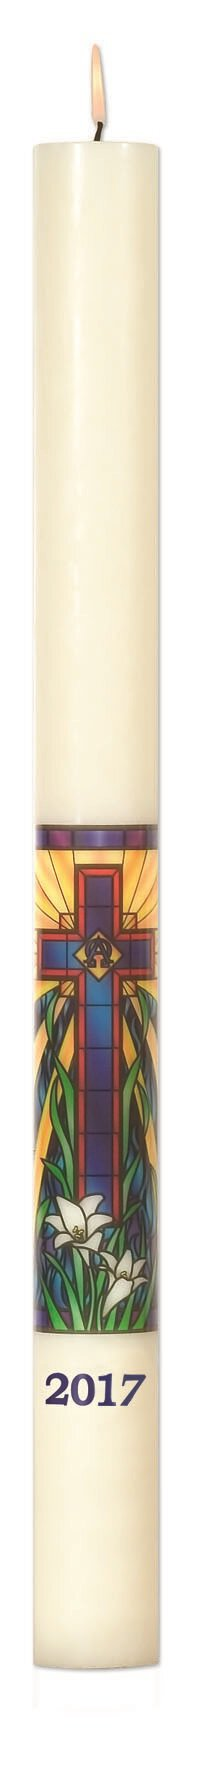 No 4 Special Radiant Light Mosaic Paschal Candle